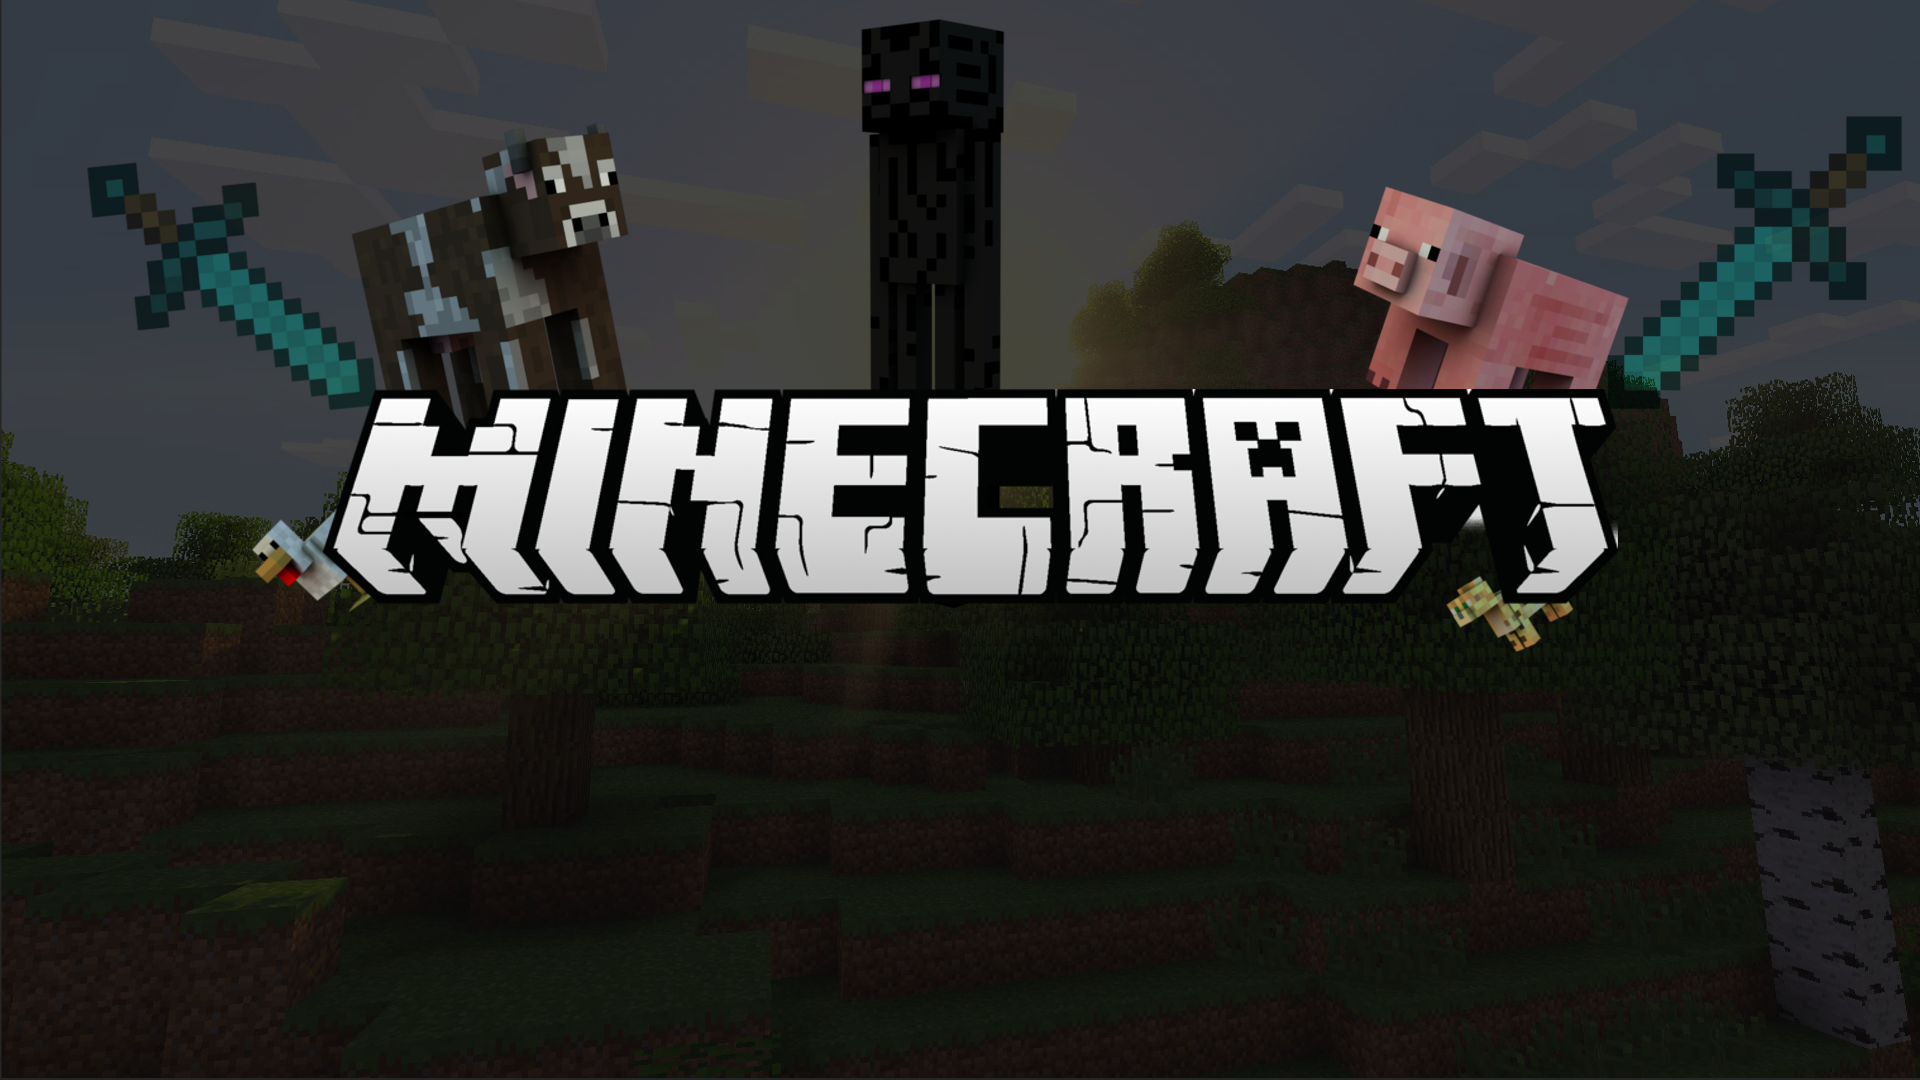 Minecraft Custom Wallpaper HD Wallpaper